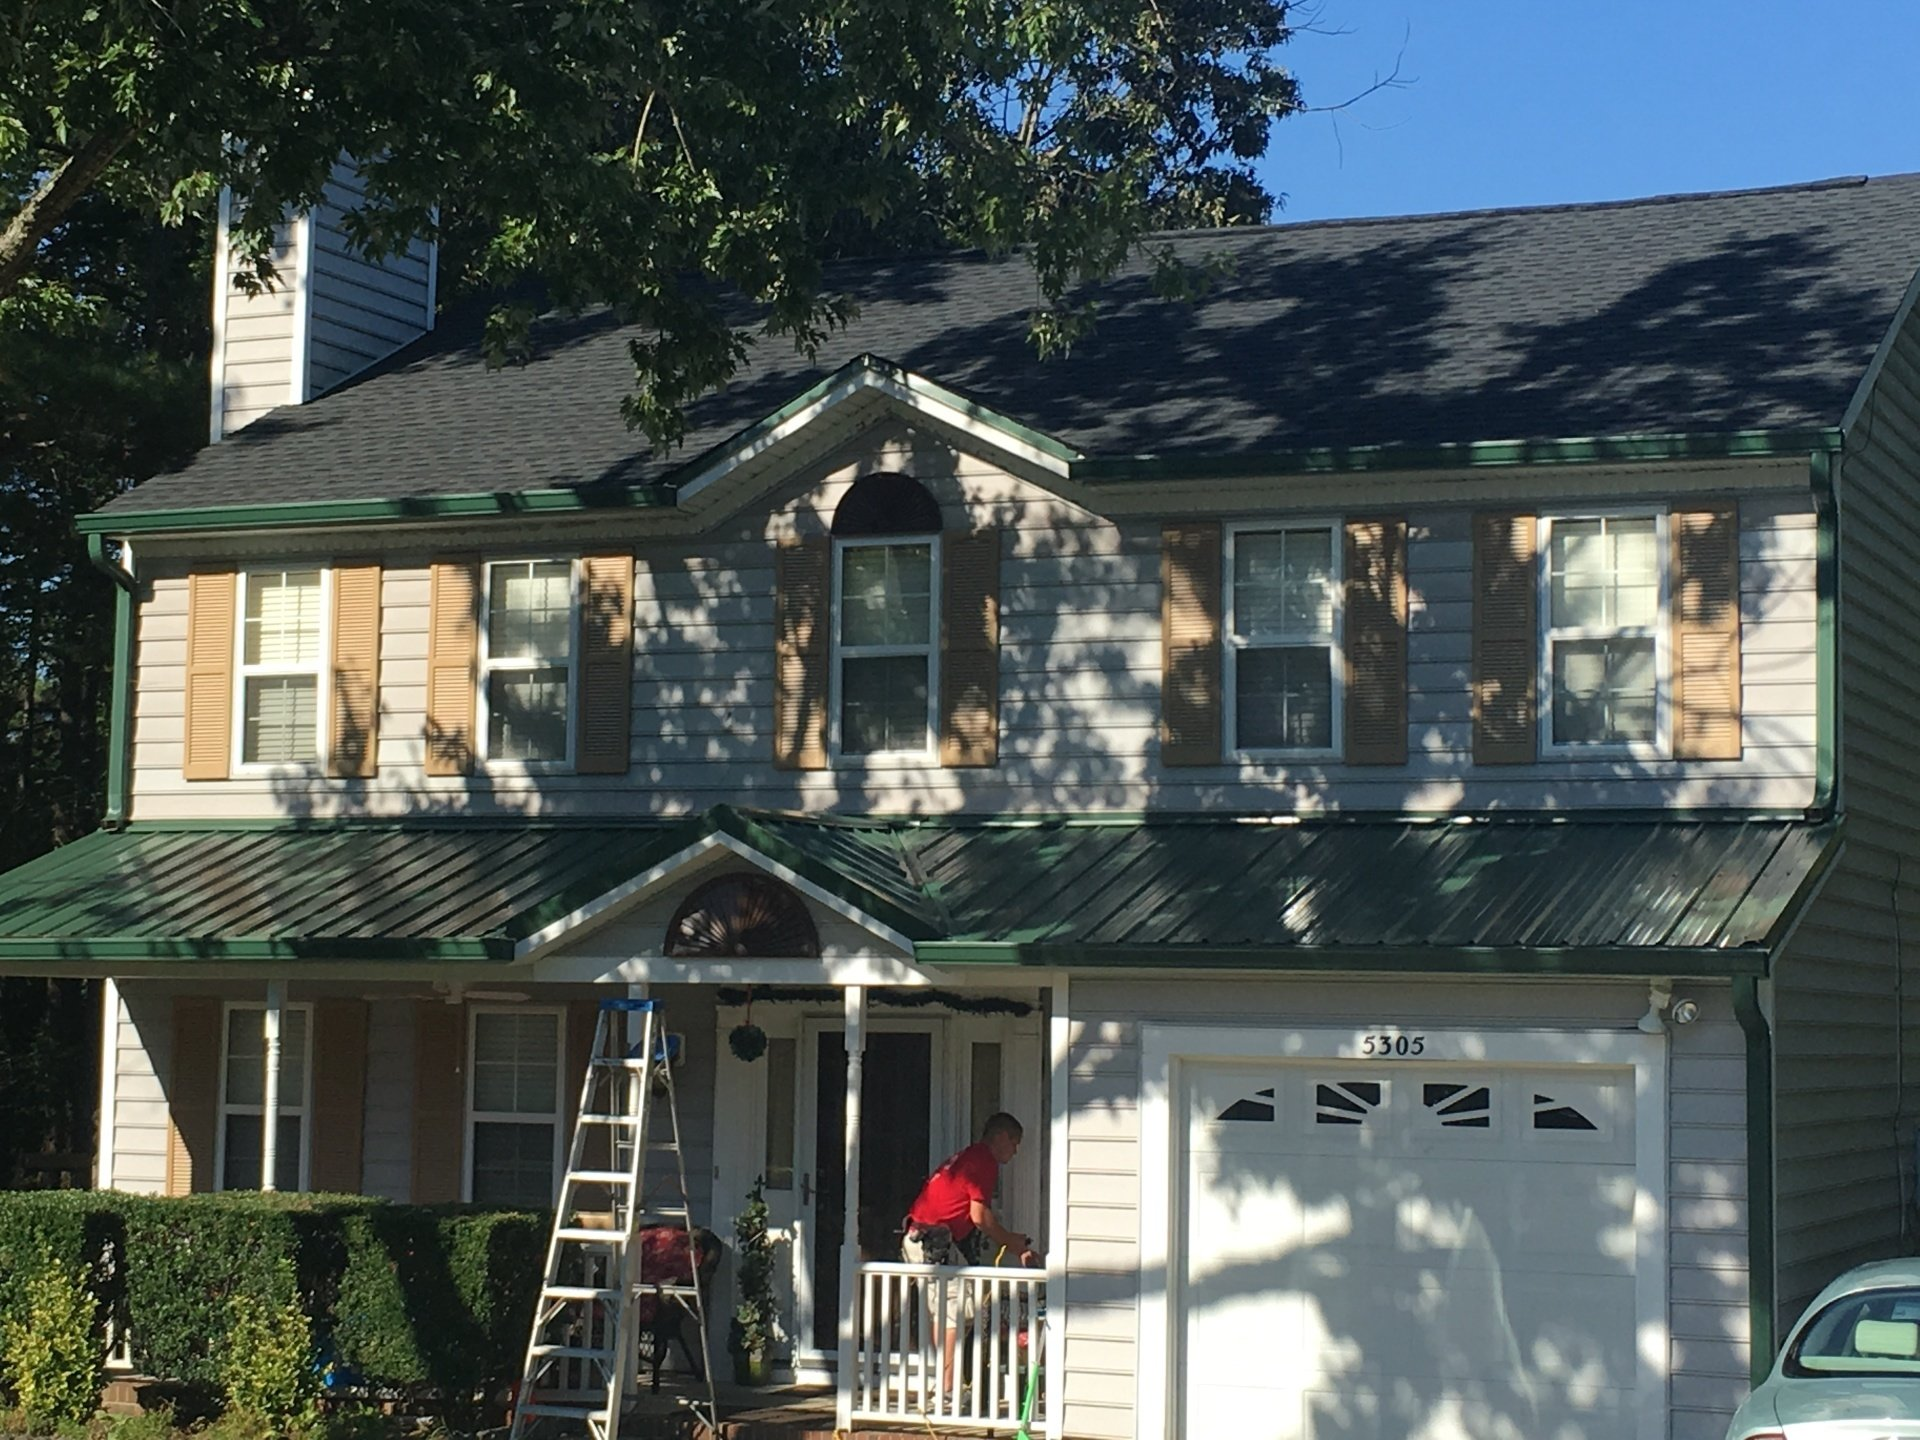 Roofing Company Zebulon Nc Bk Roofing Amp Seamless Gutters